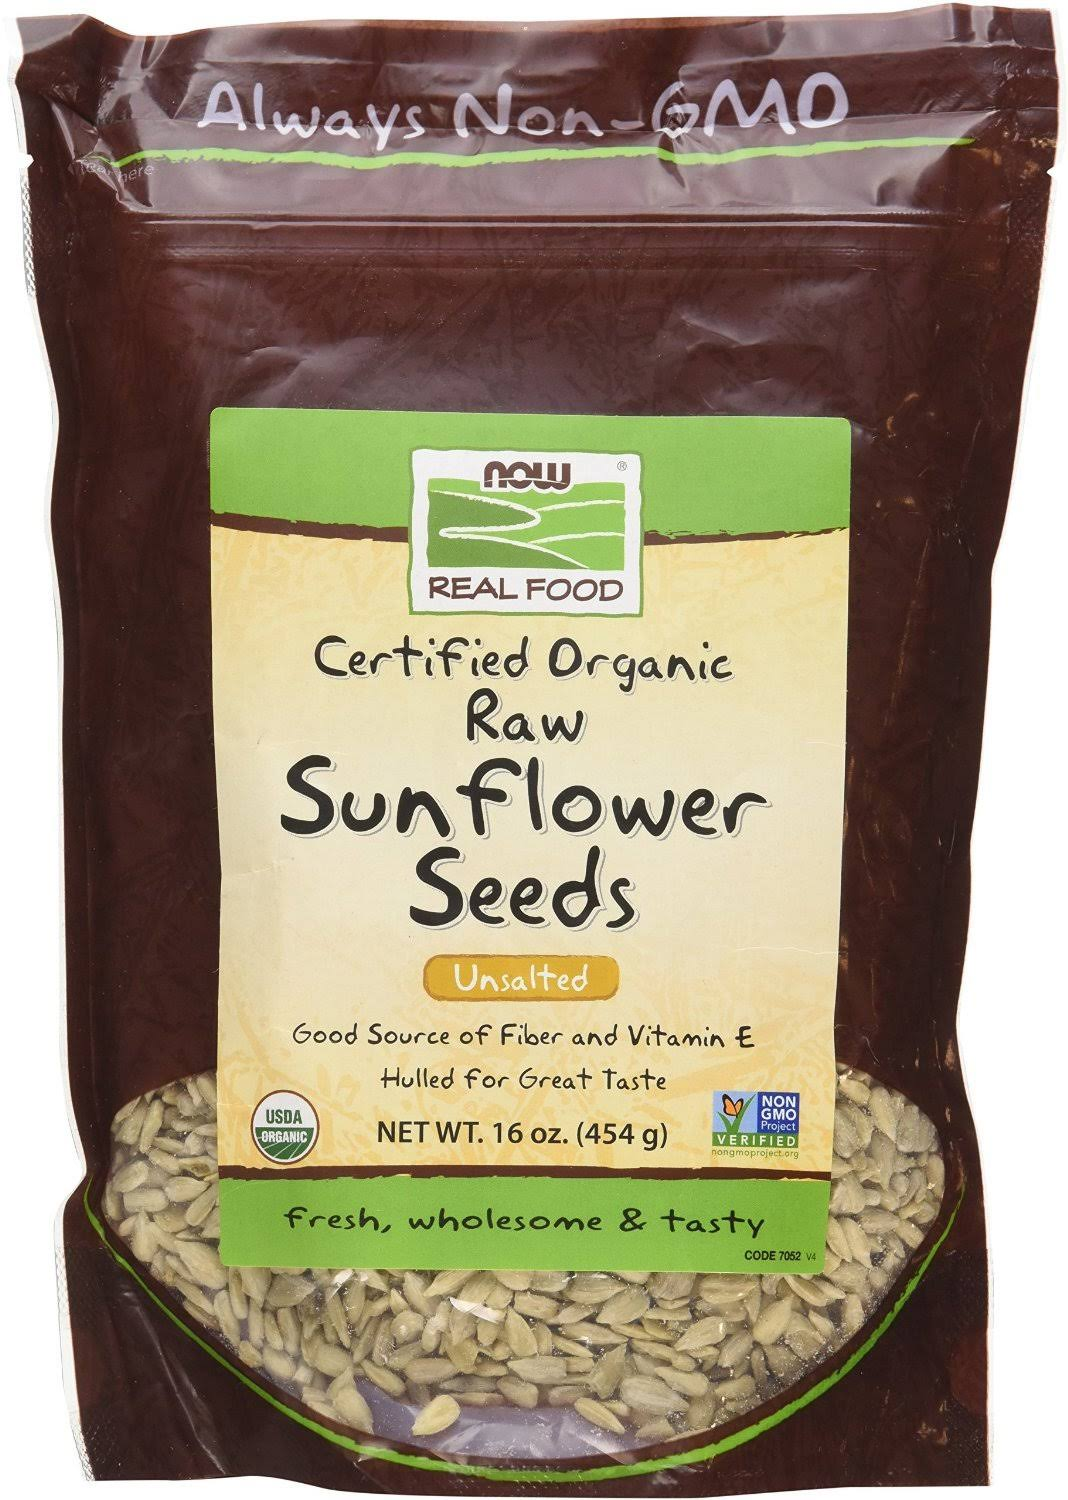 Now Foods Real Food Raw Sunflower Seeds - Unsalted, 16oz